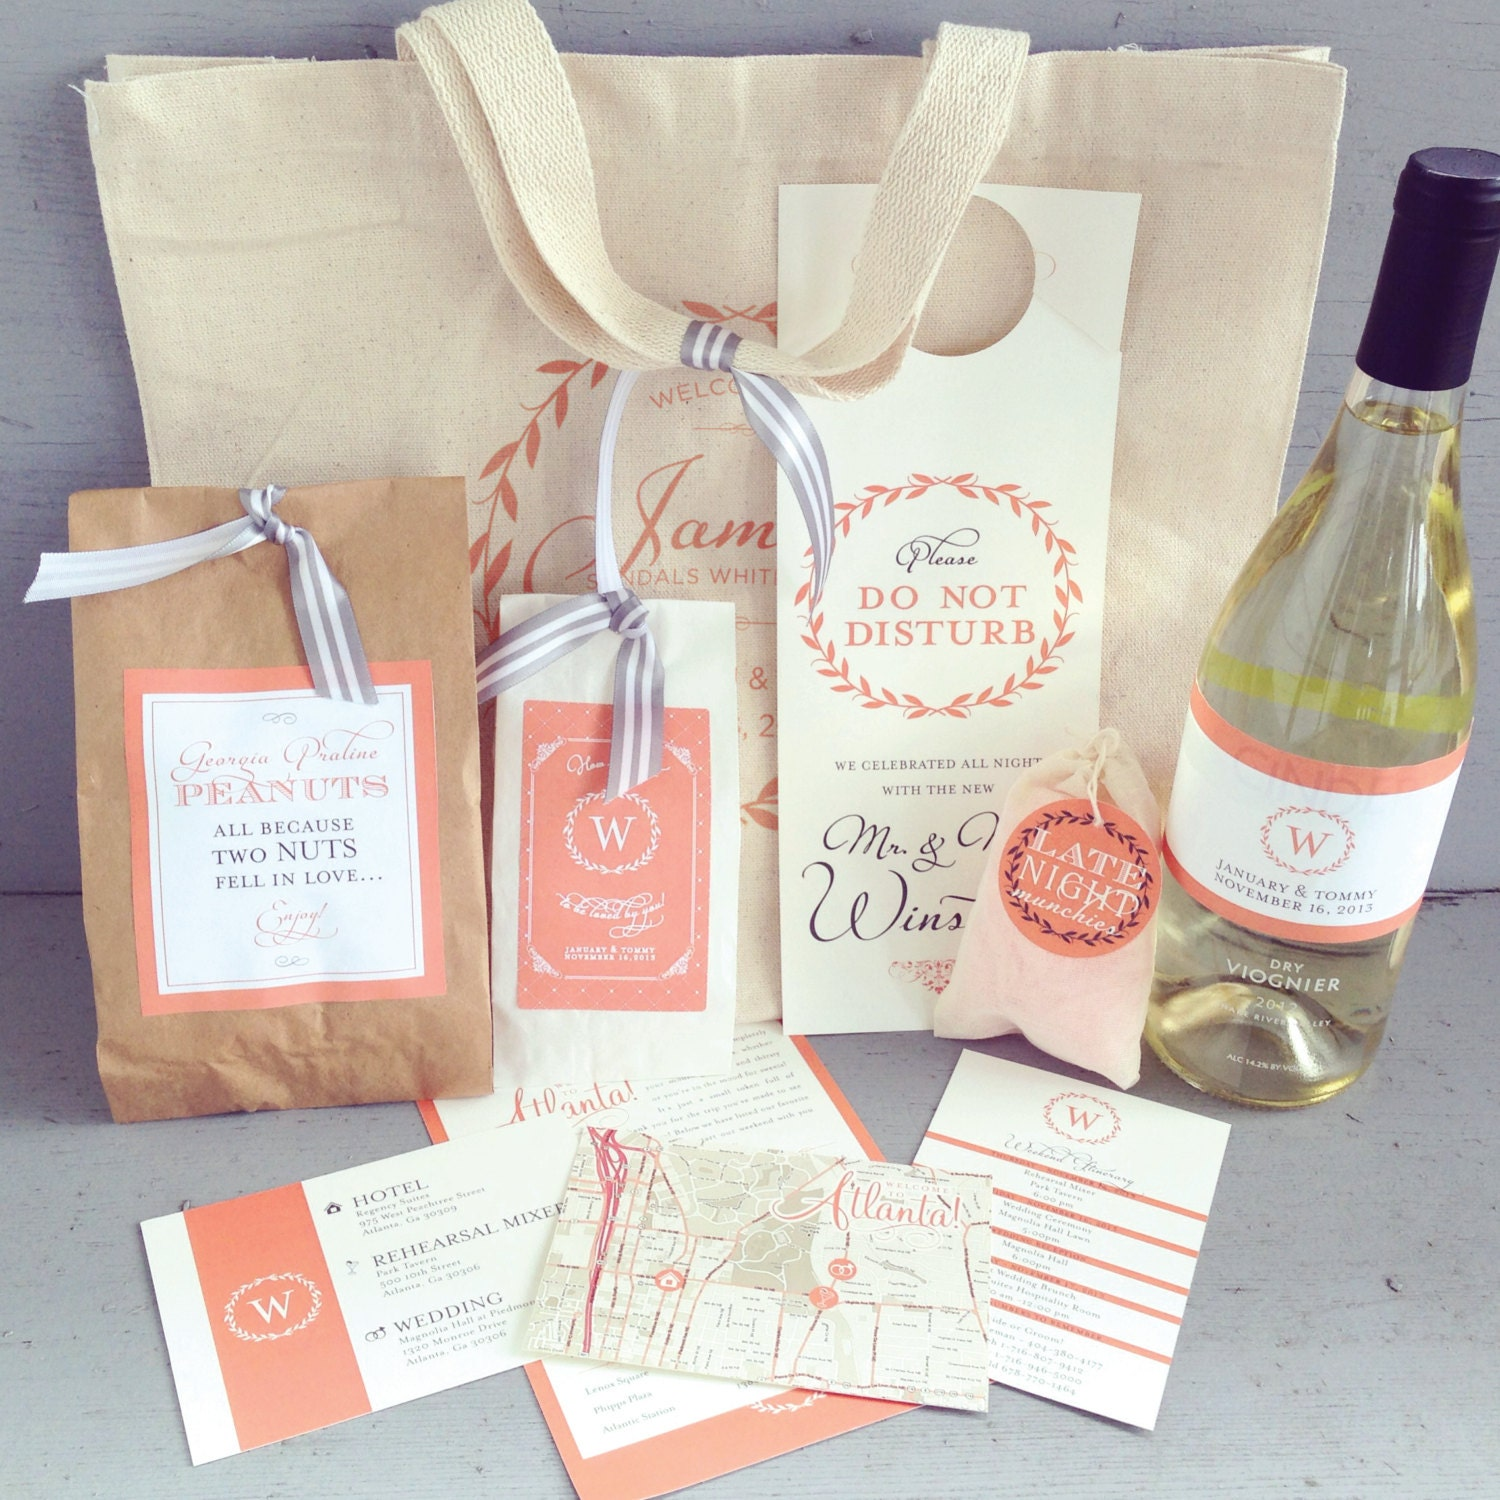 Wedding Welcome Bag Ideas Chicago : Newport, Rhode Island Wedding with True Event & Leila Brewster